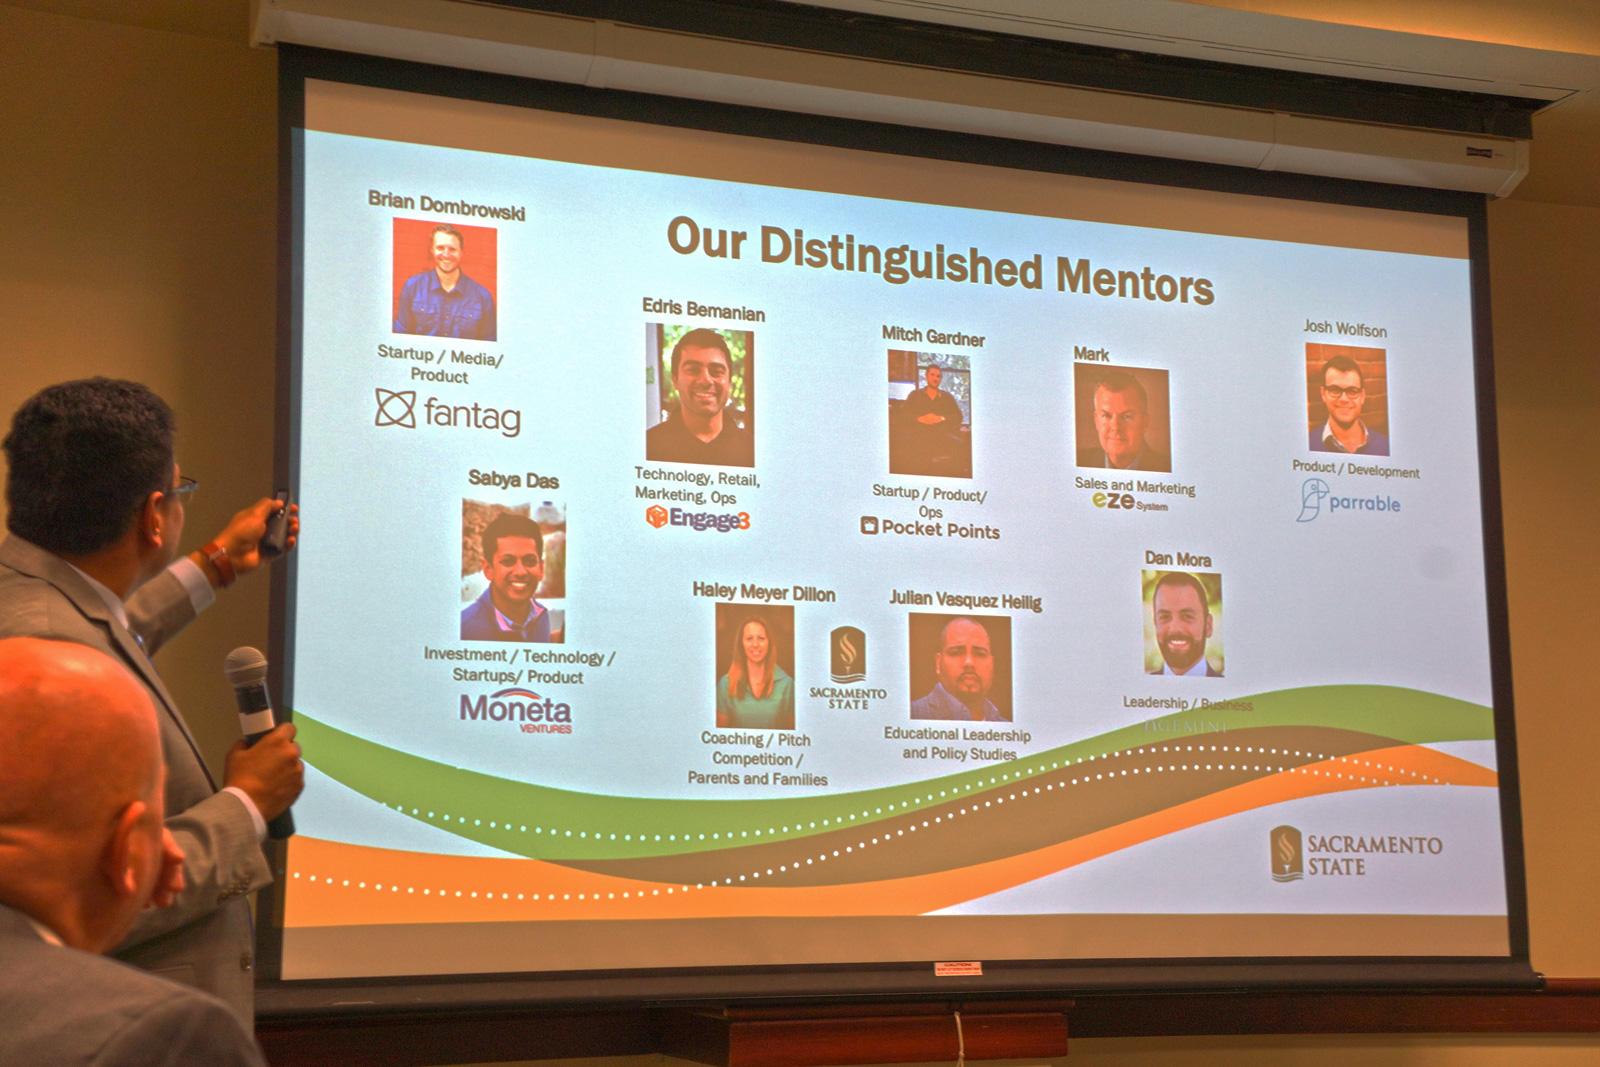 Carlsen Center Entrepreneurship mentors